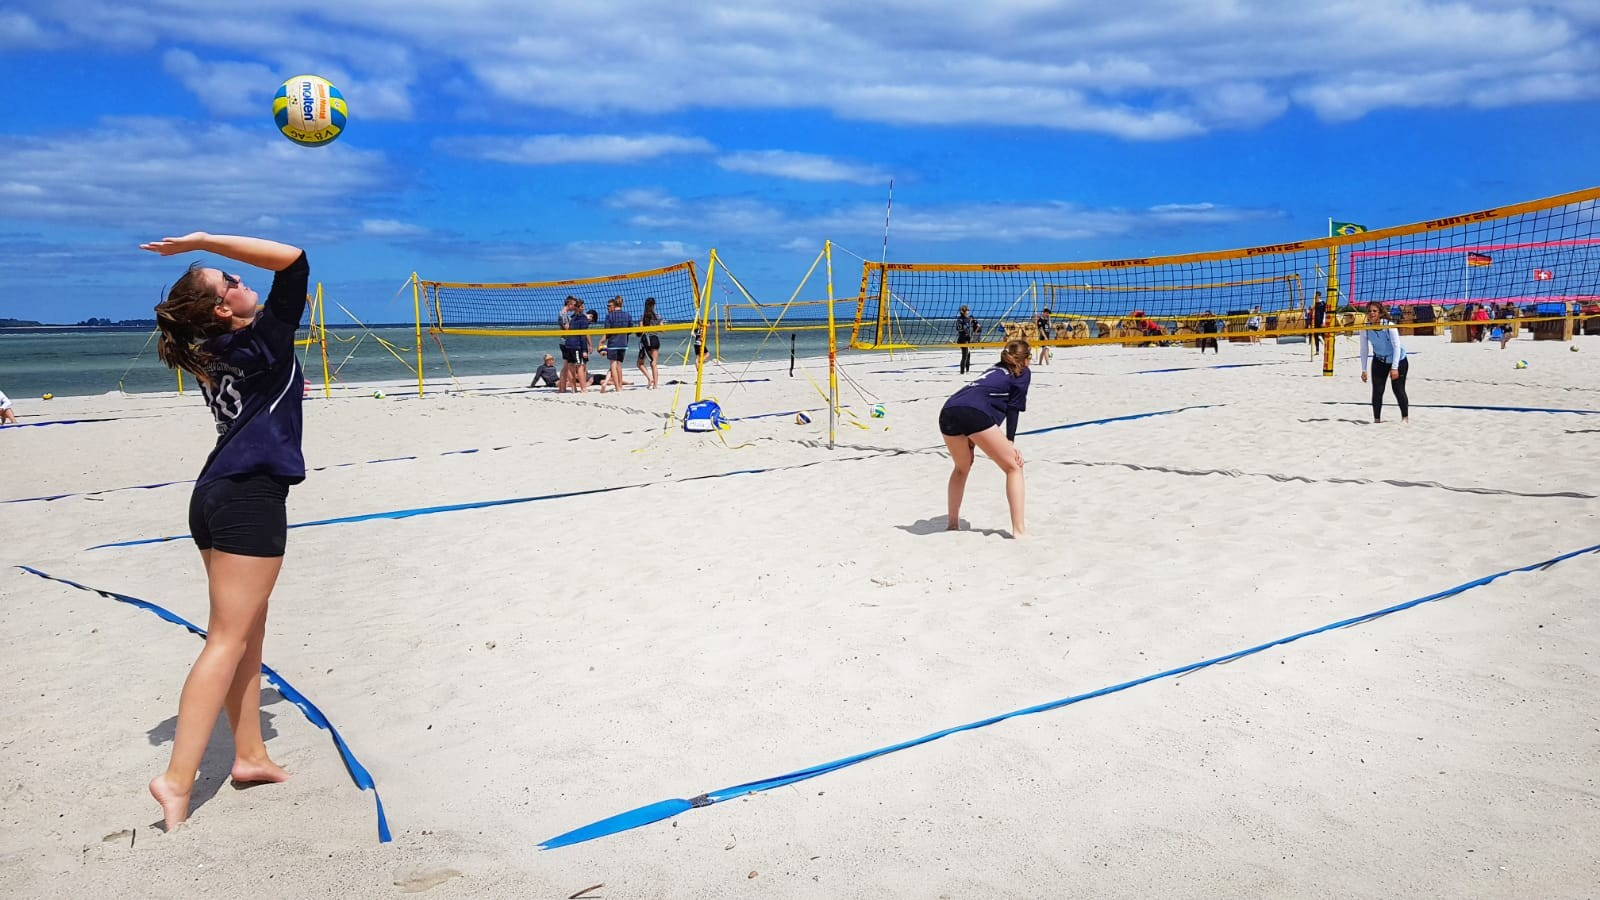 2018_06_15_Beach-Volleyball-Land_1